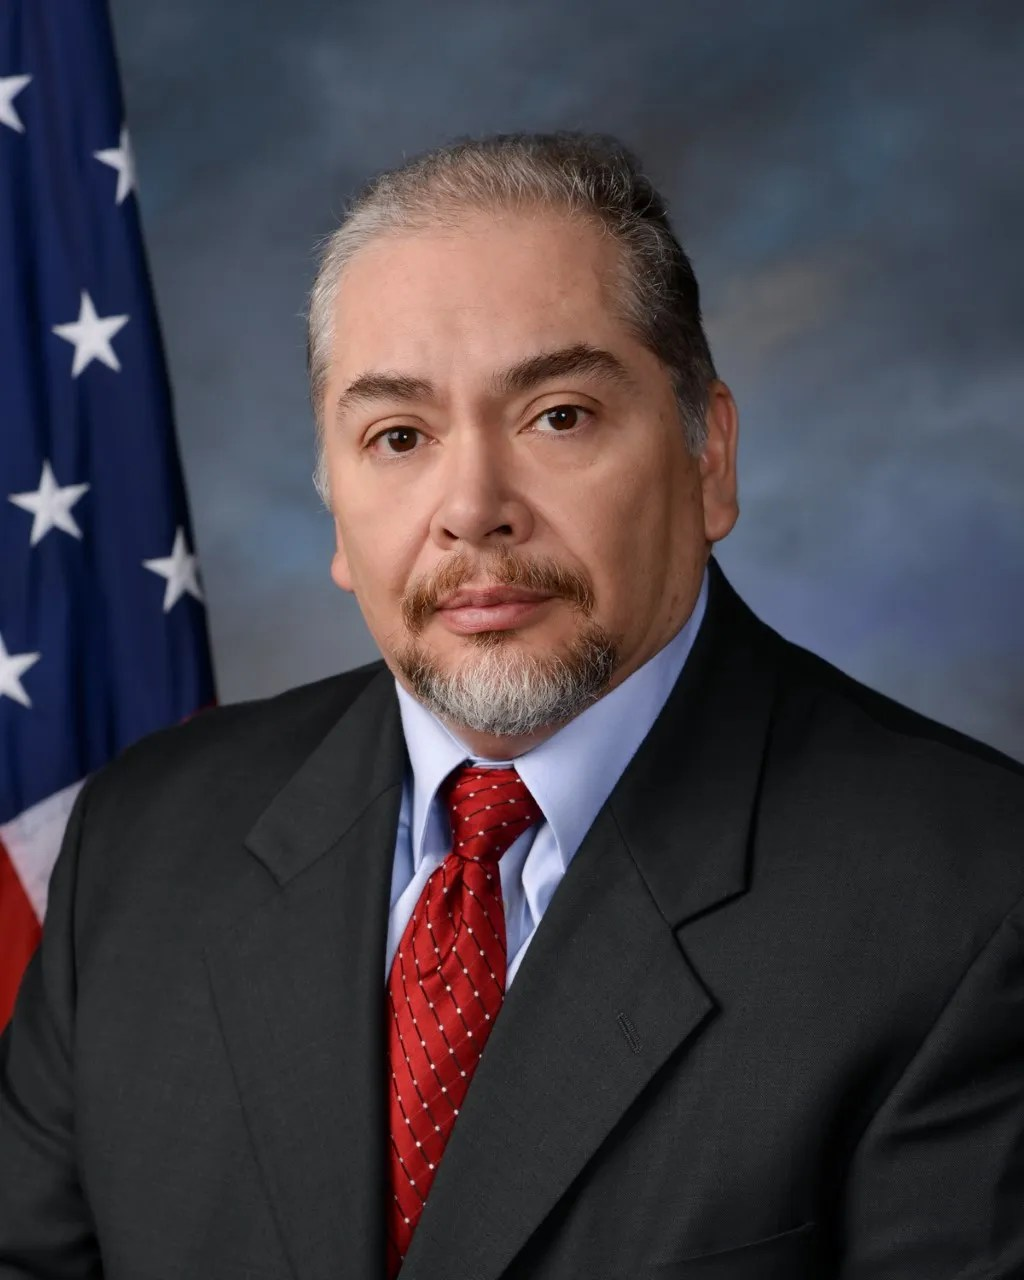 DEA agents have linked the 2019 fatal shooting of Dayton, Ohio, detective Jorge Del Rio to a California-based drug ring supplied by the Sinaloa Cartel.